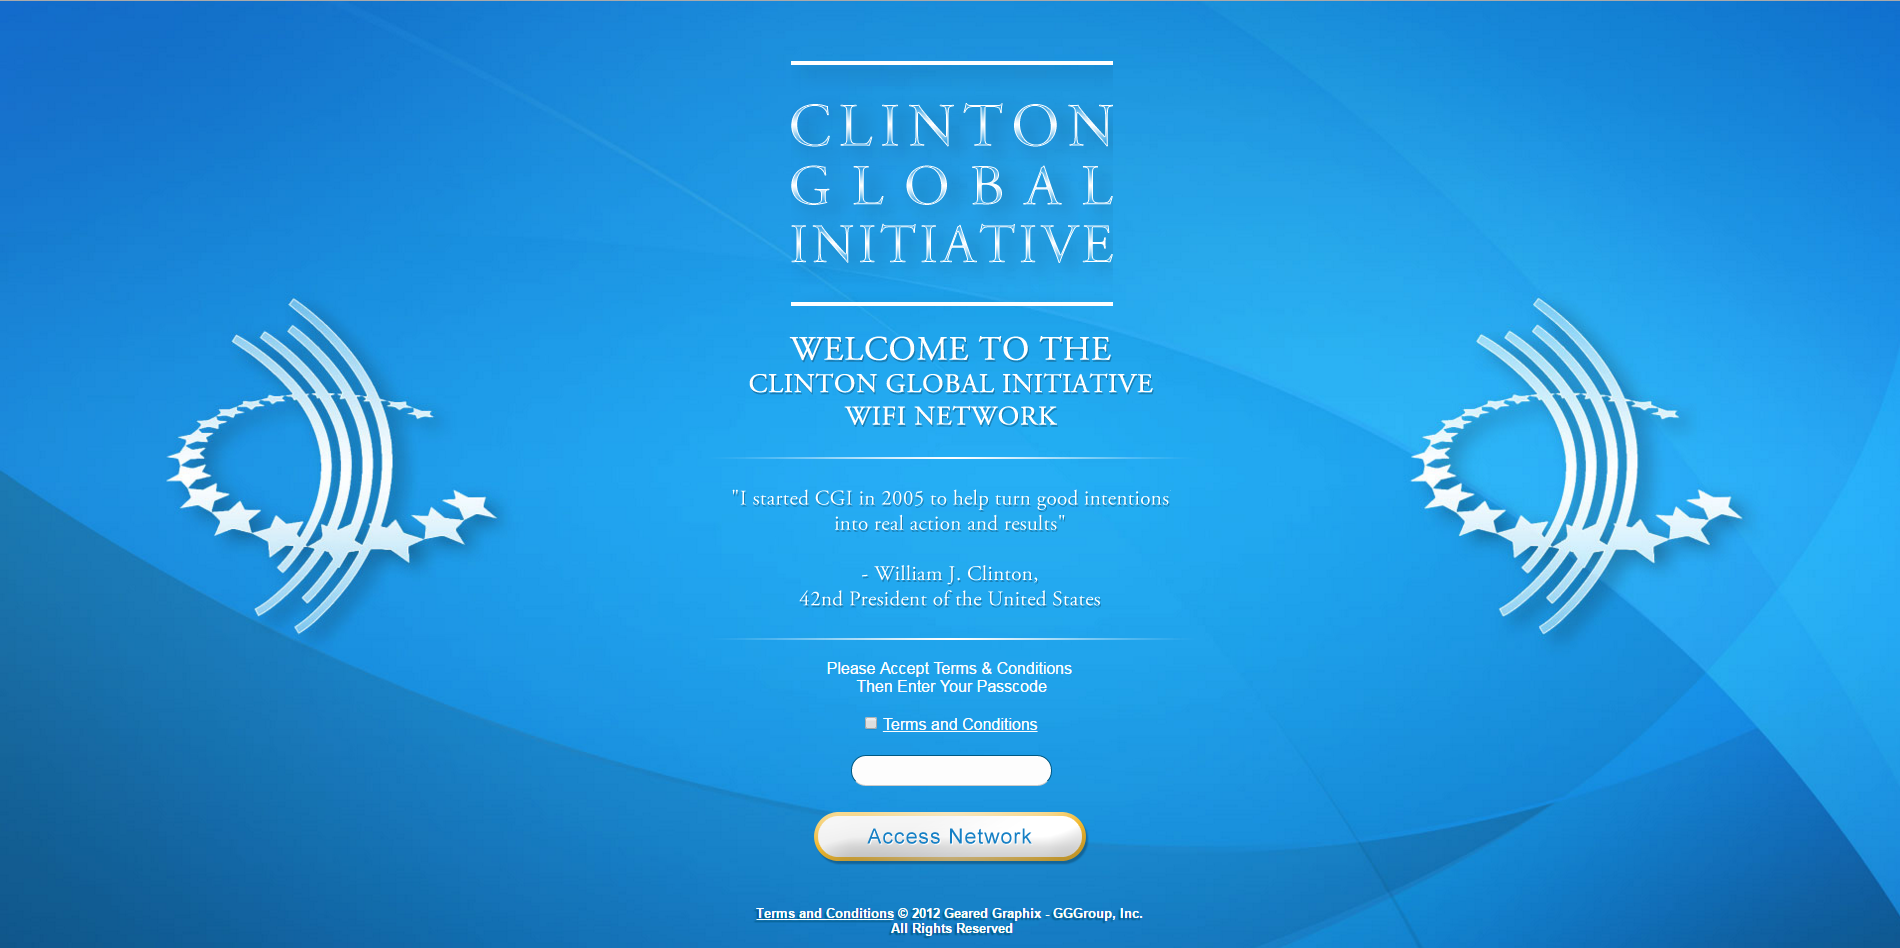 Clinton Global Initiative Portal